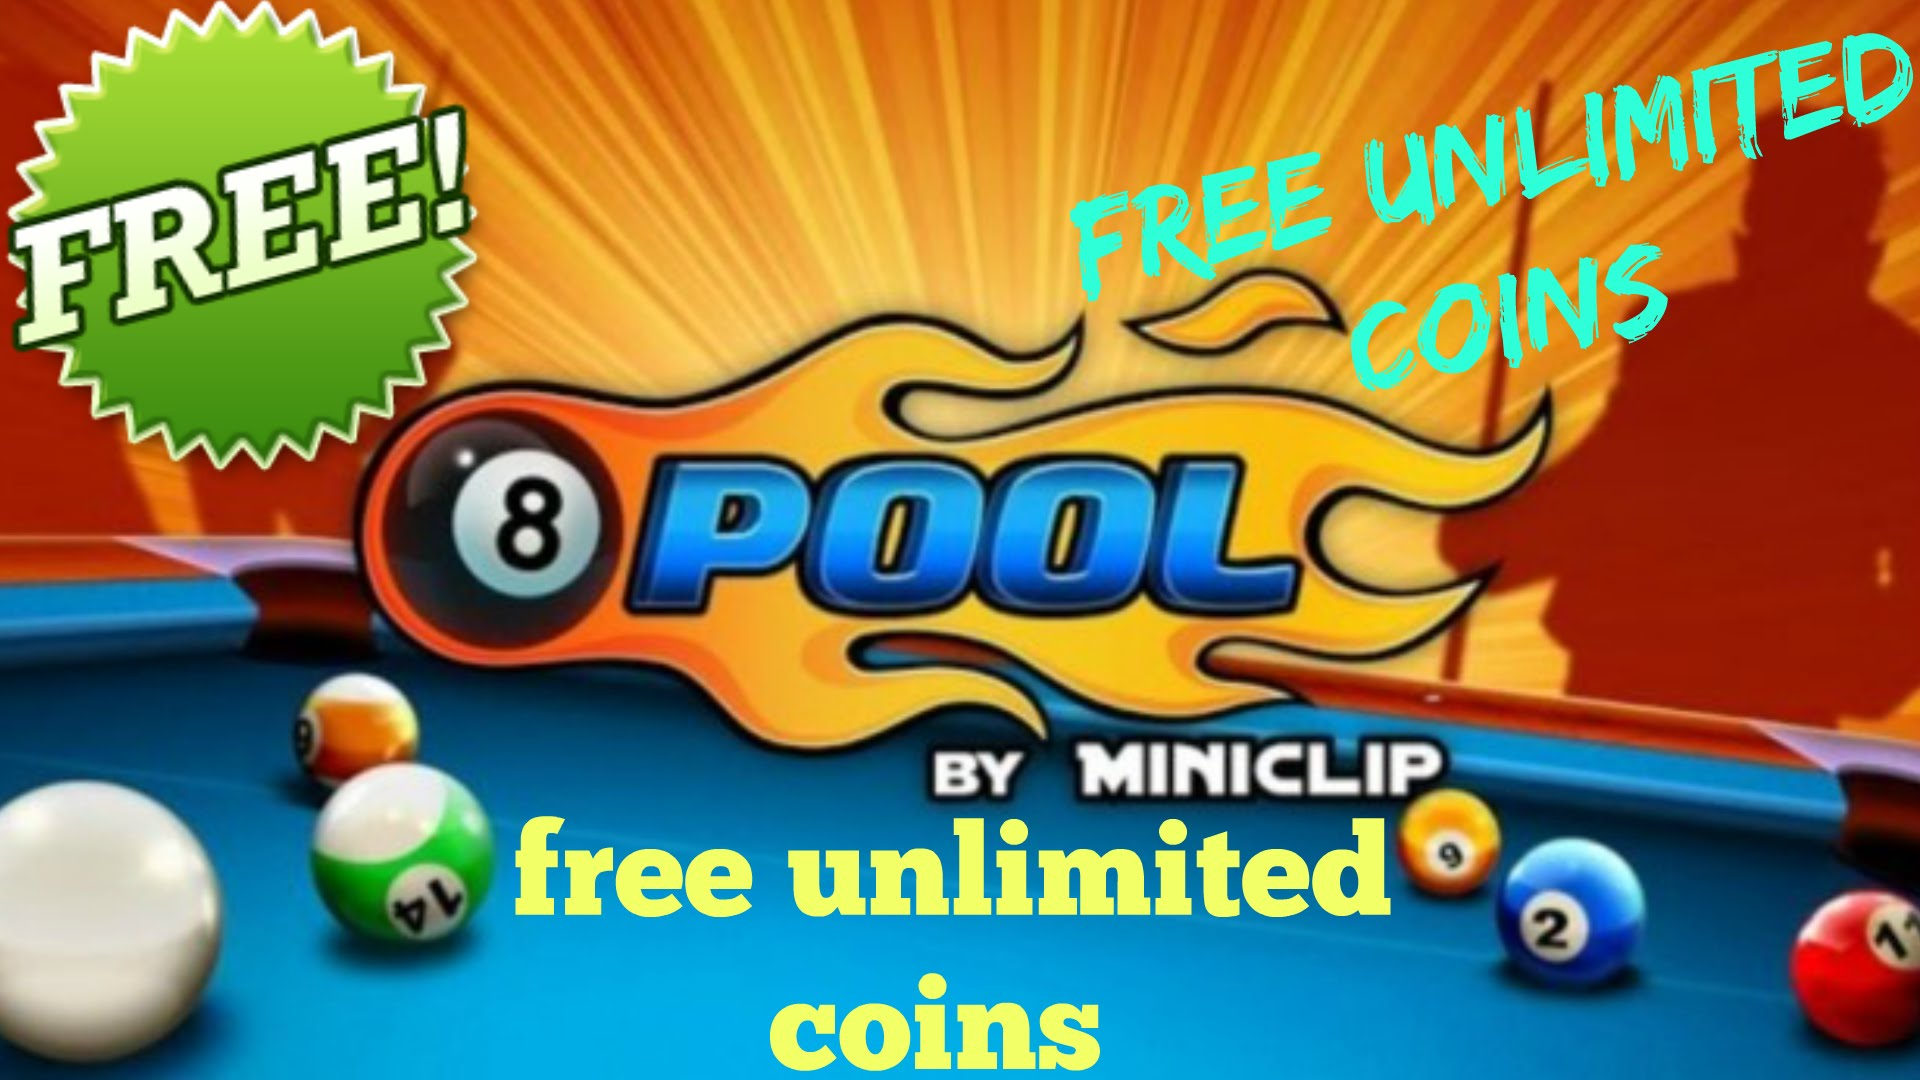 【WWW.CHEATRADAR.CO 8BALLPOOL 8 BALL POOL】 Cash and Coins FOR ANDROID IOS PC PLAYSTATION | 100% WORKING METHOD | GET UNLIMITED RESOURCES NOW